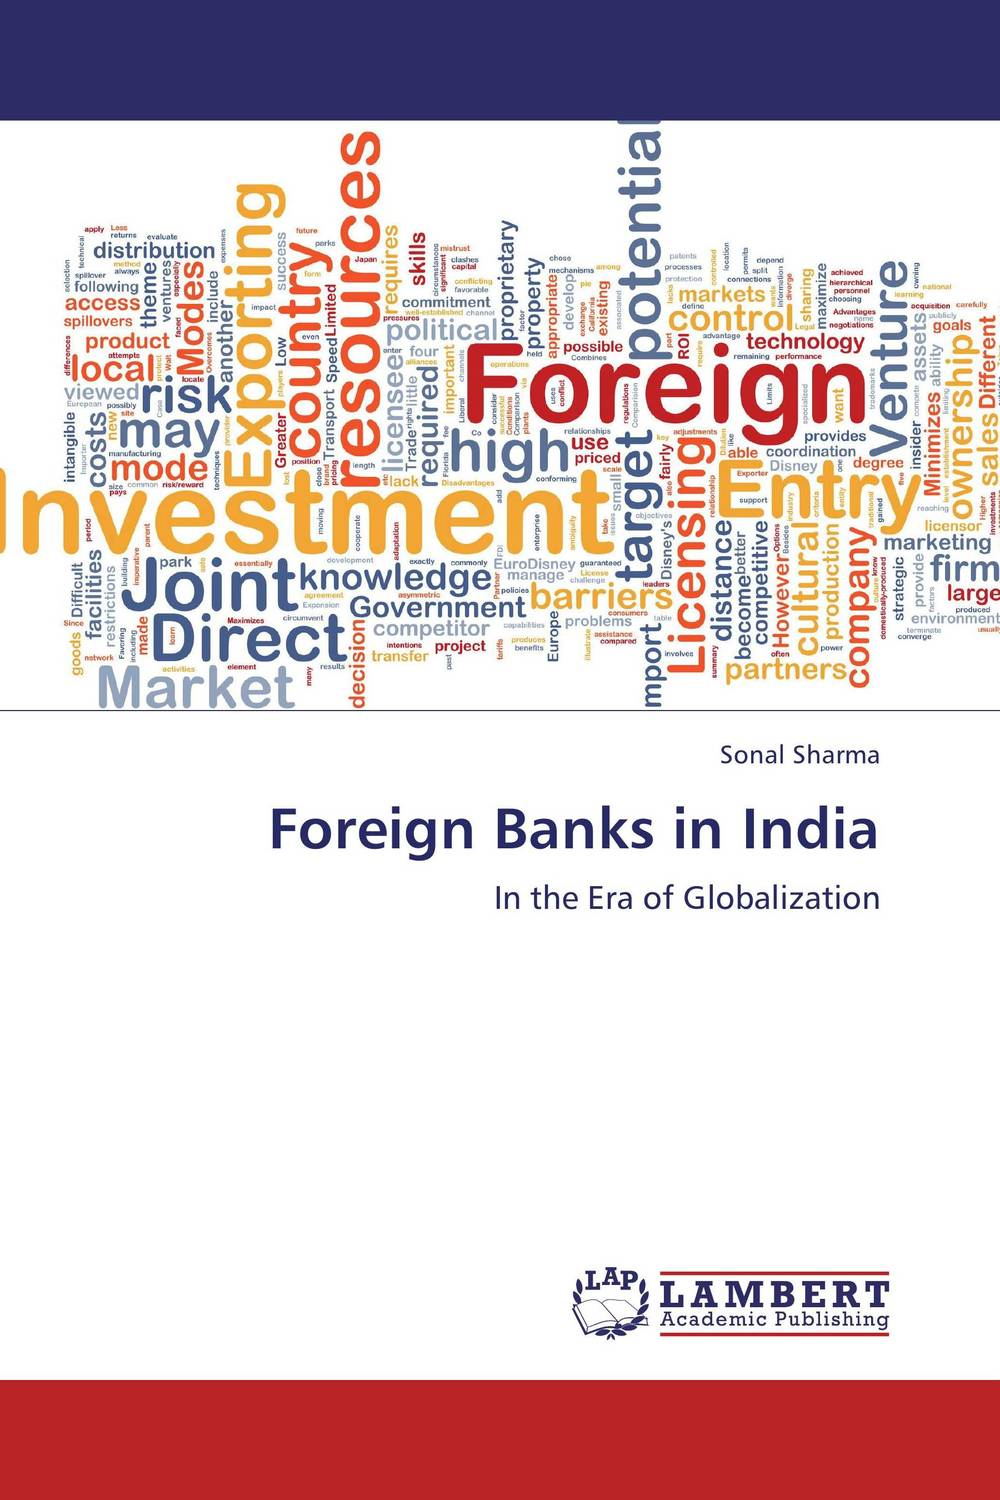 Foreign Banks in India non performing assets in banks